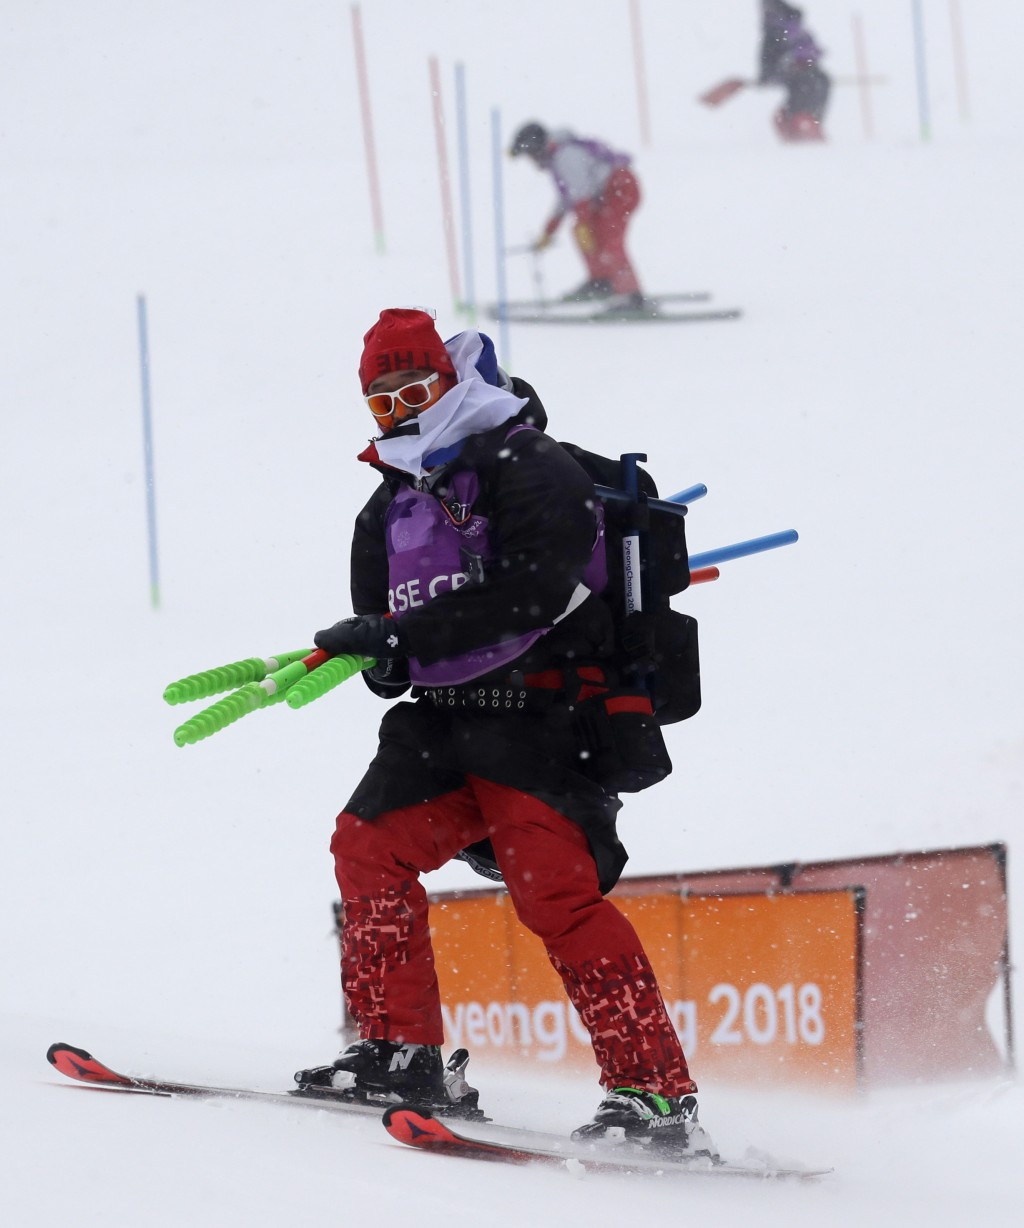 The course is dismantled after the women's slalom is canceled for the day due to weather at Yongpyong alpine center at the 2018 Winter Olympics in Pye